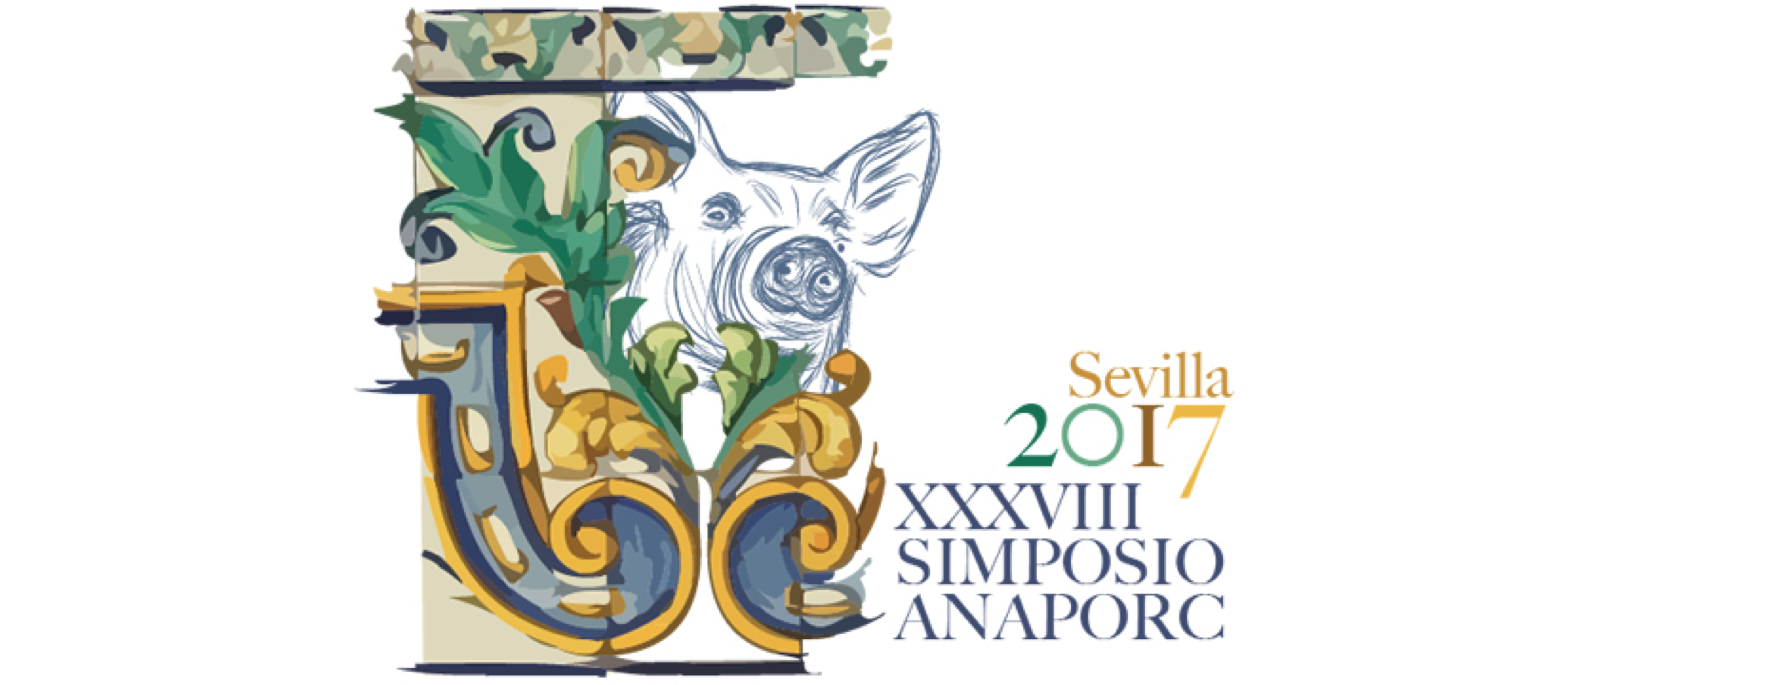 anaporc 2017